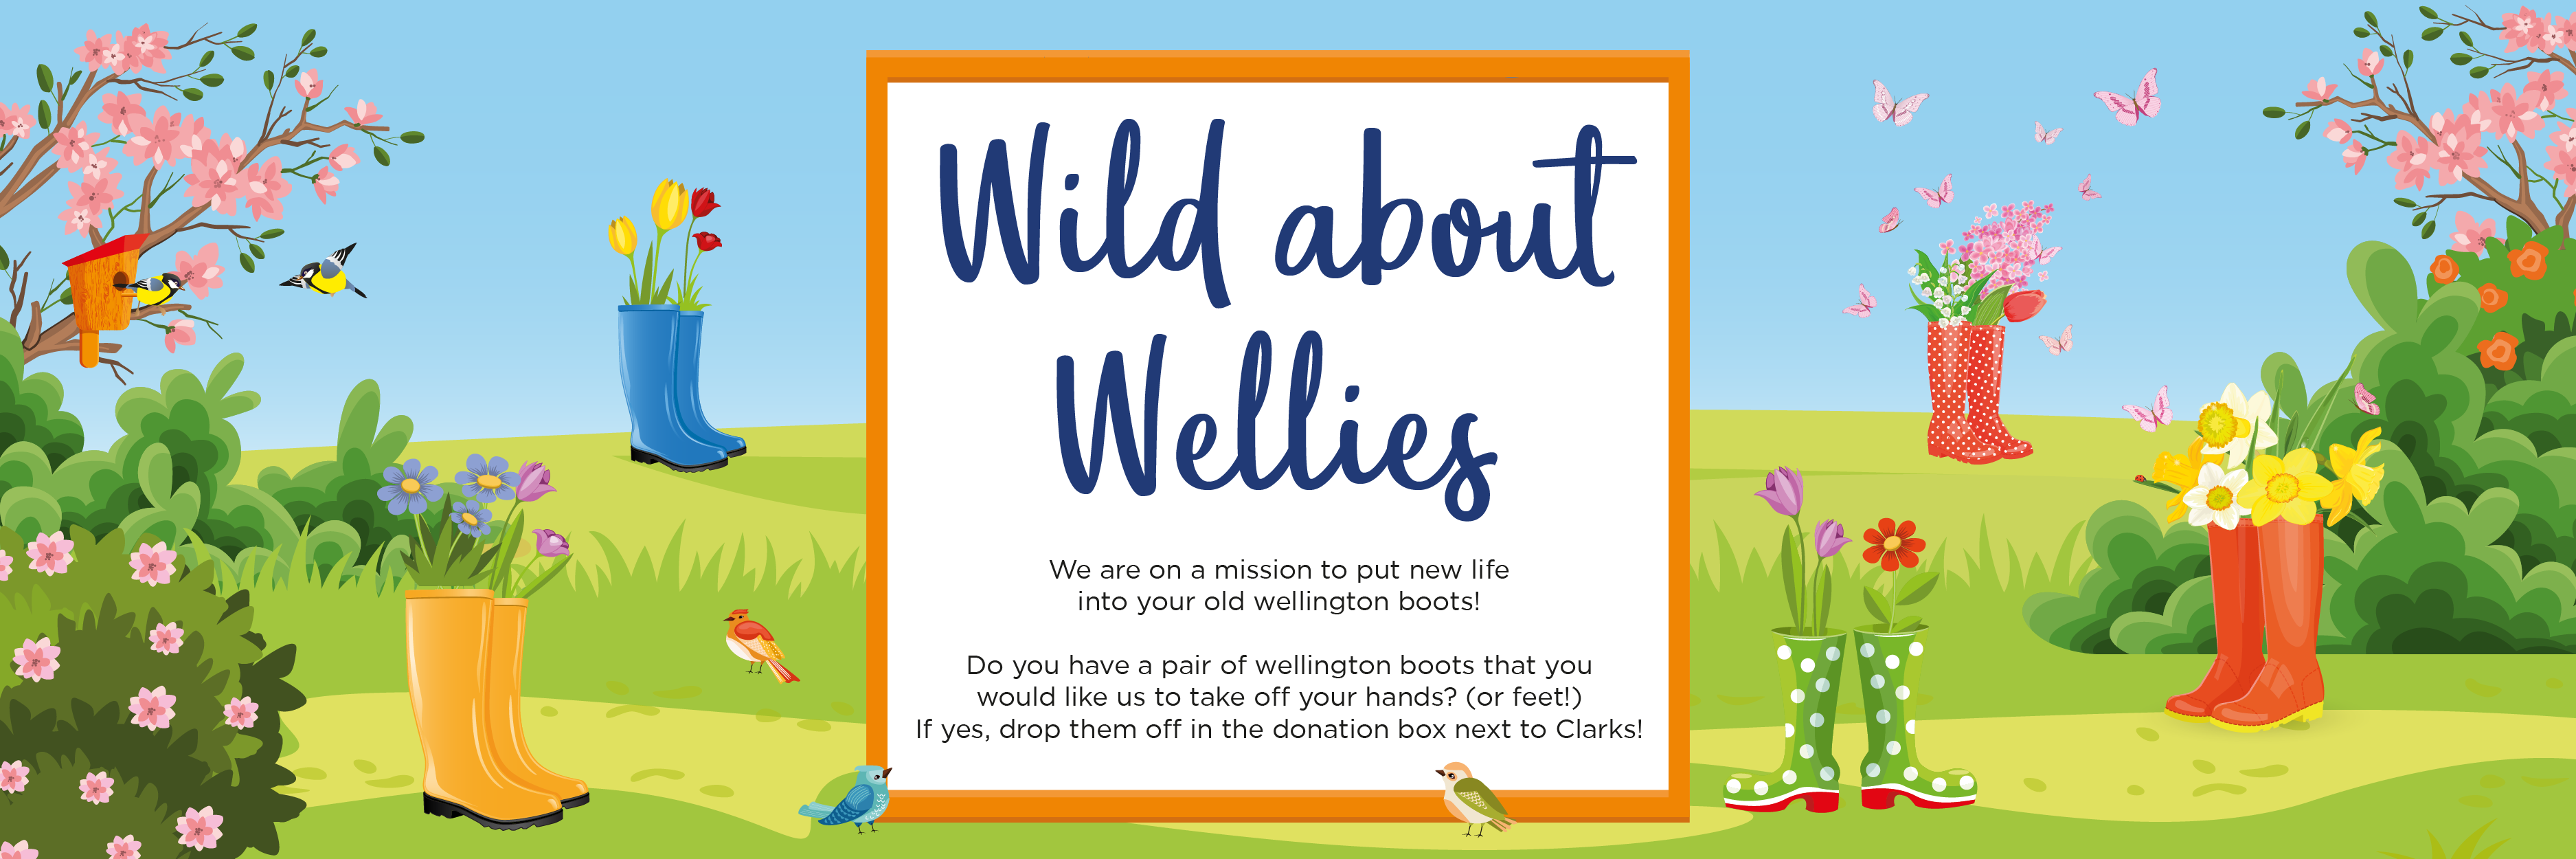 Wild about Wellies